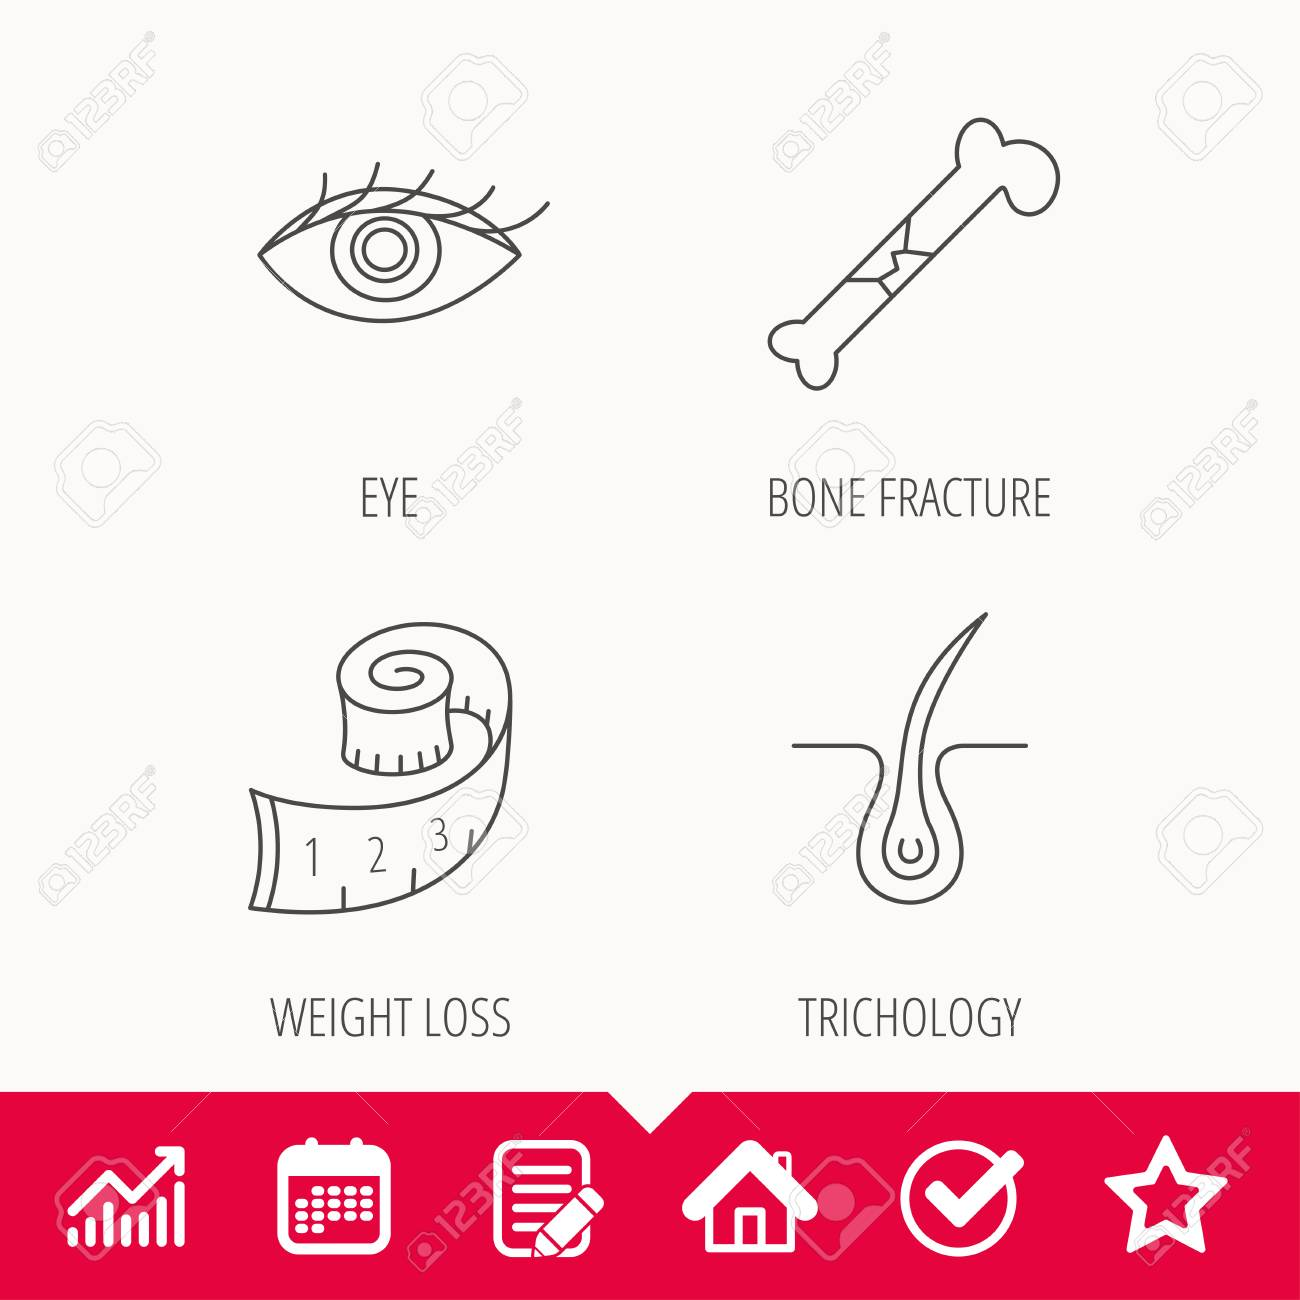 Bone fracture, weight loss icons, eye linear sign  Edit document,